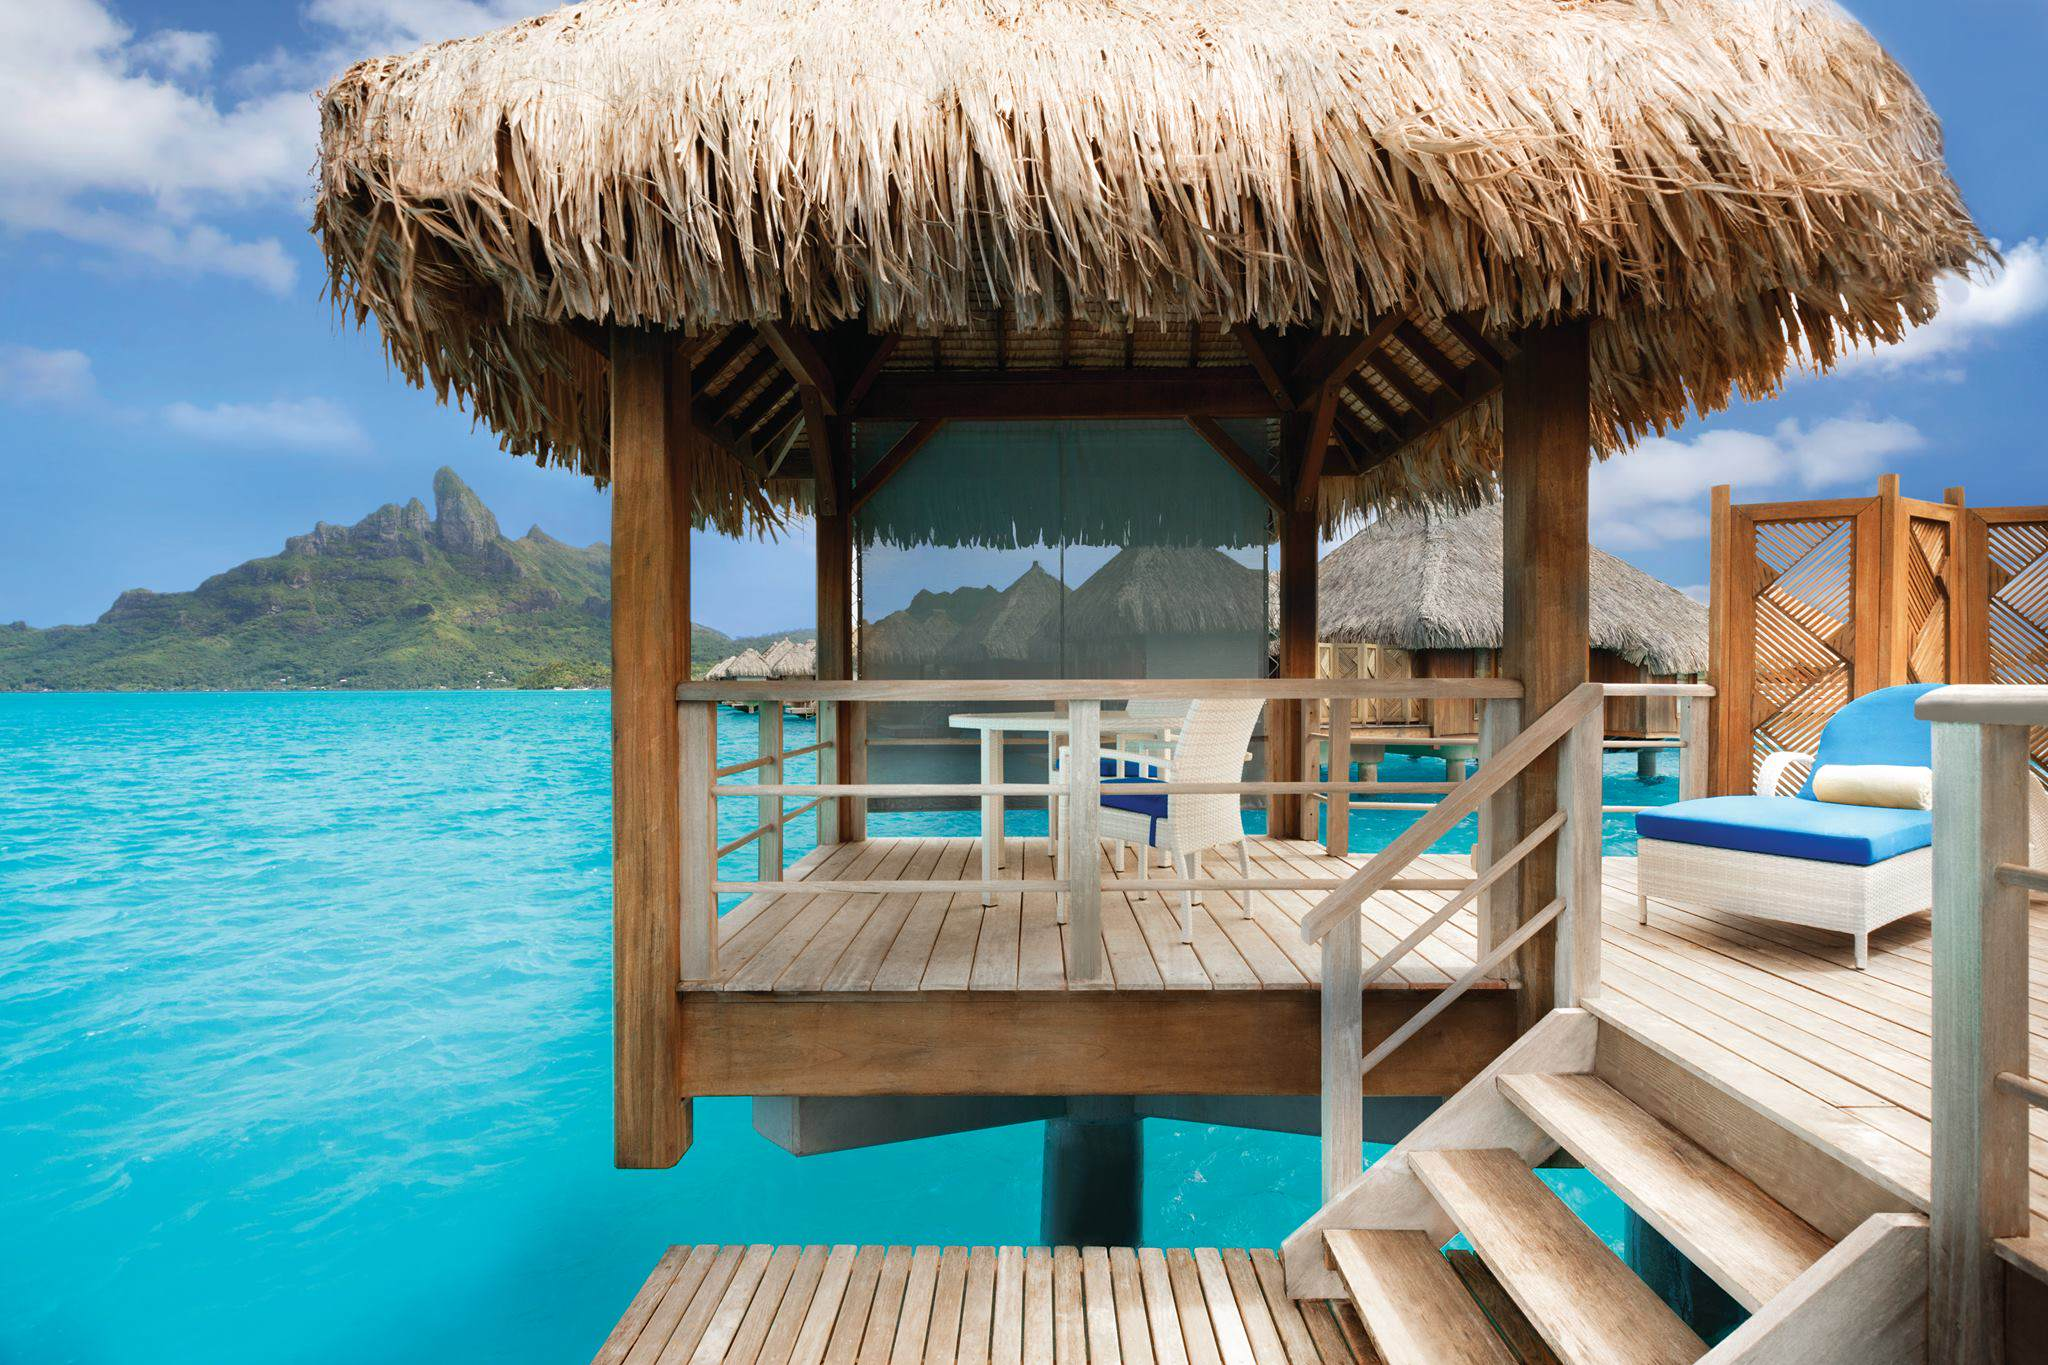 St. Regis Bora Bora Resort 6 dicas Viaje Global